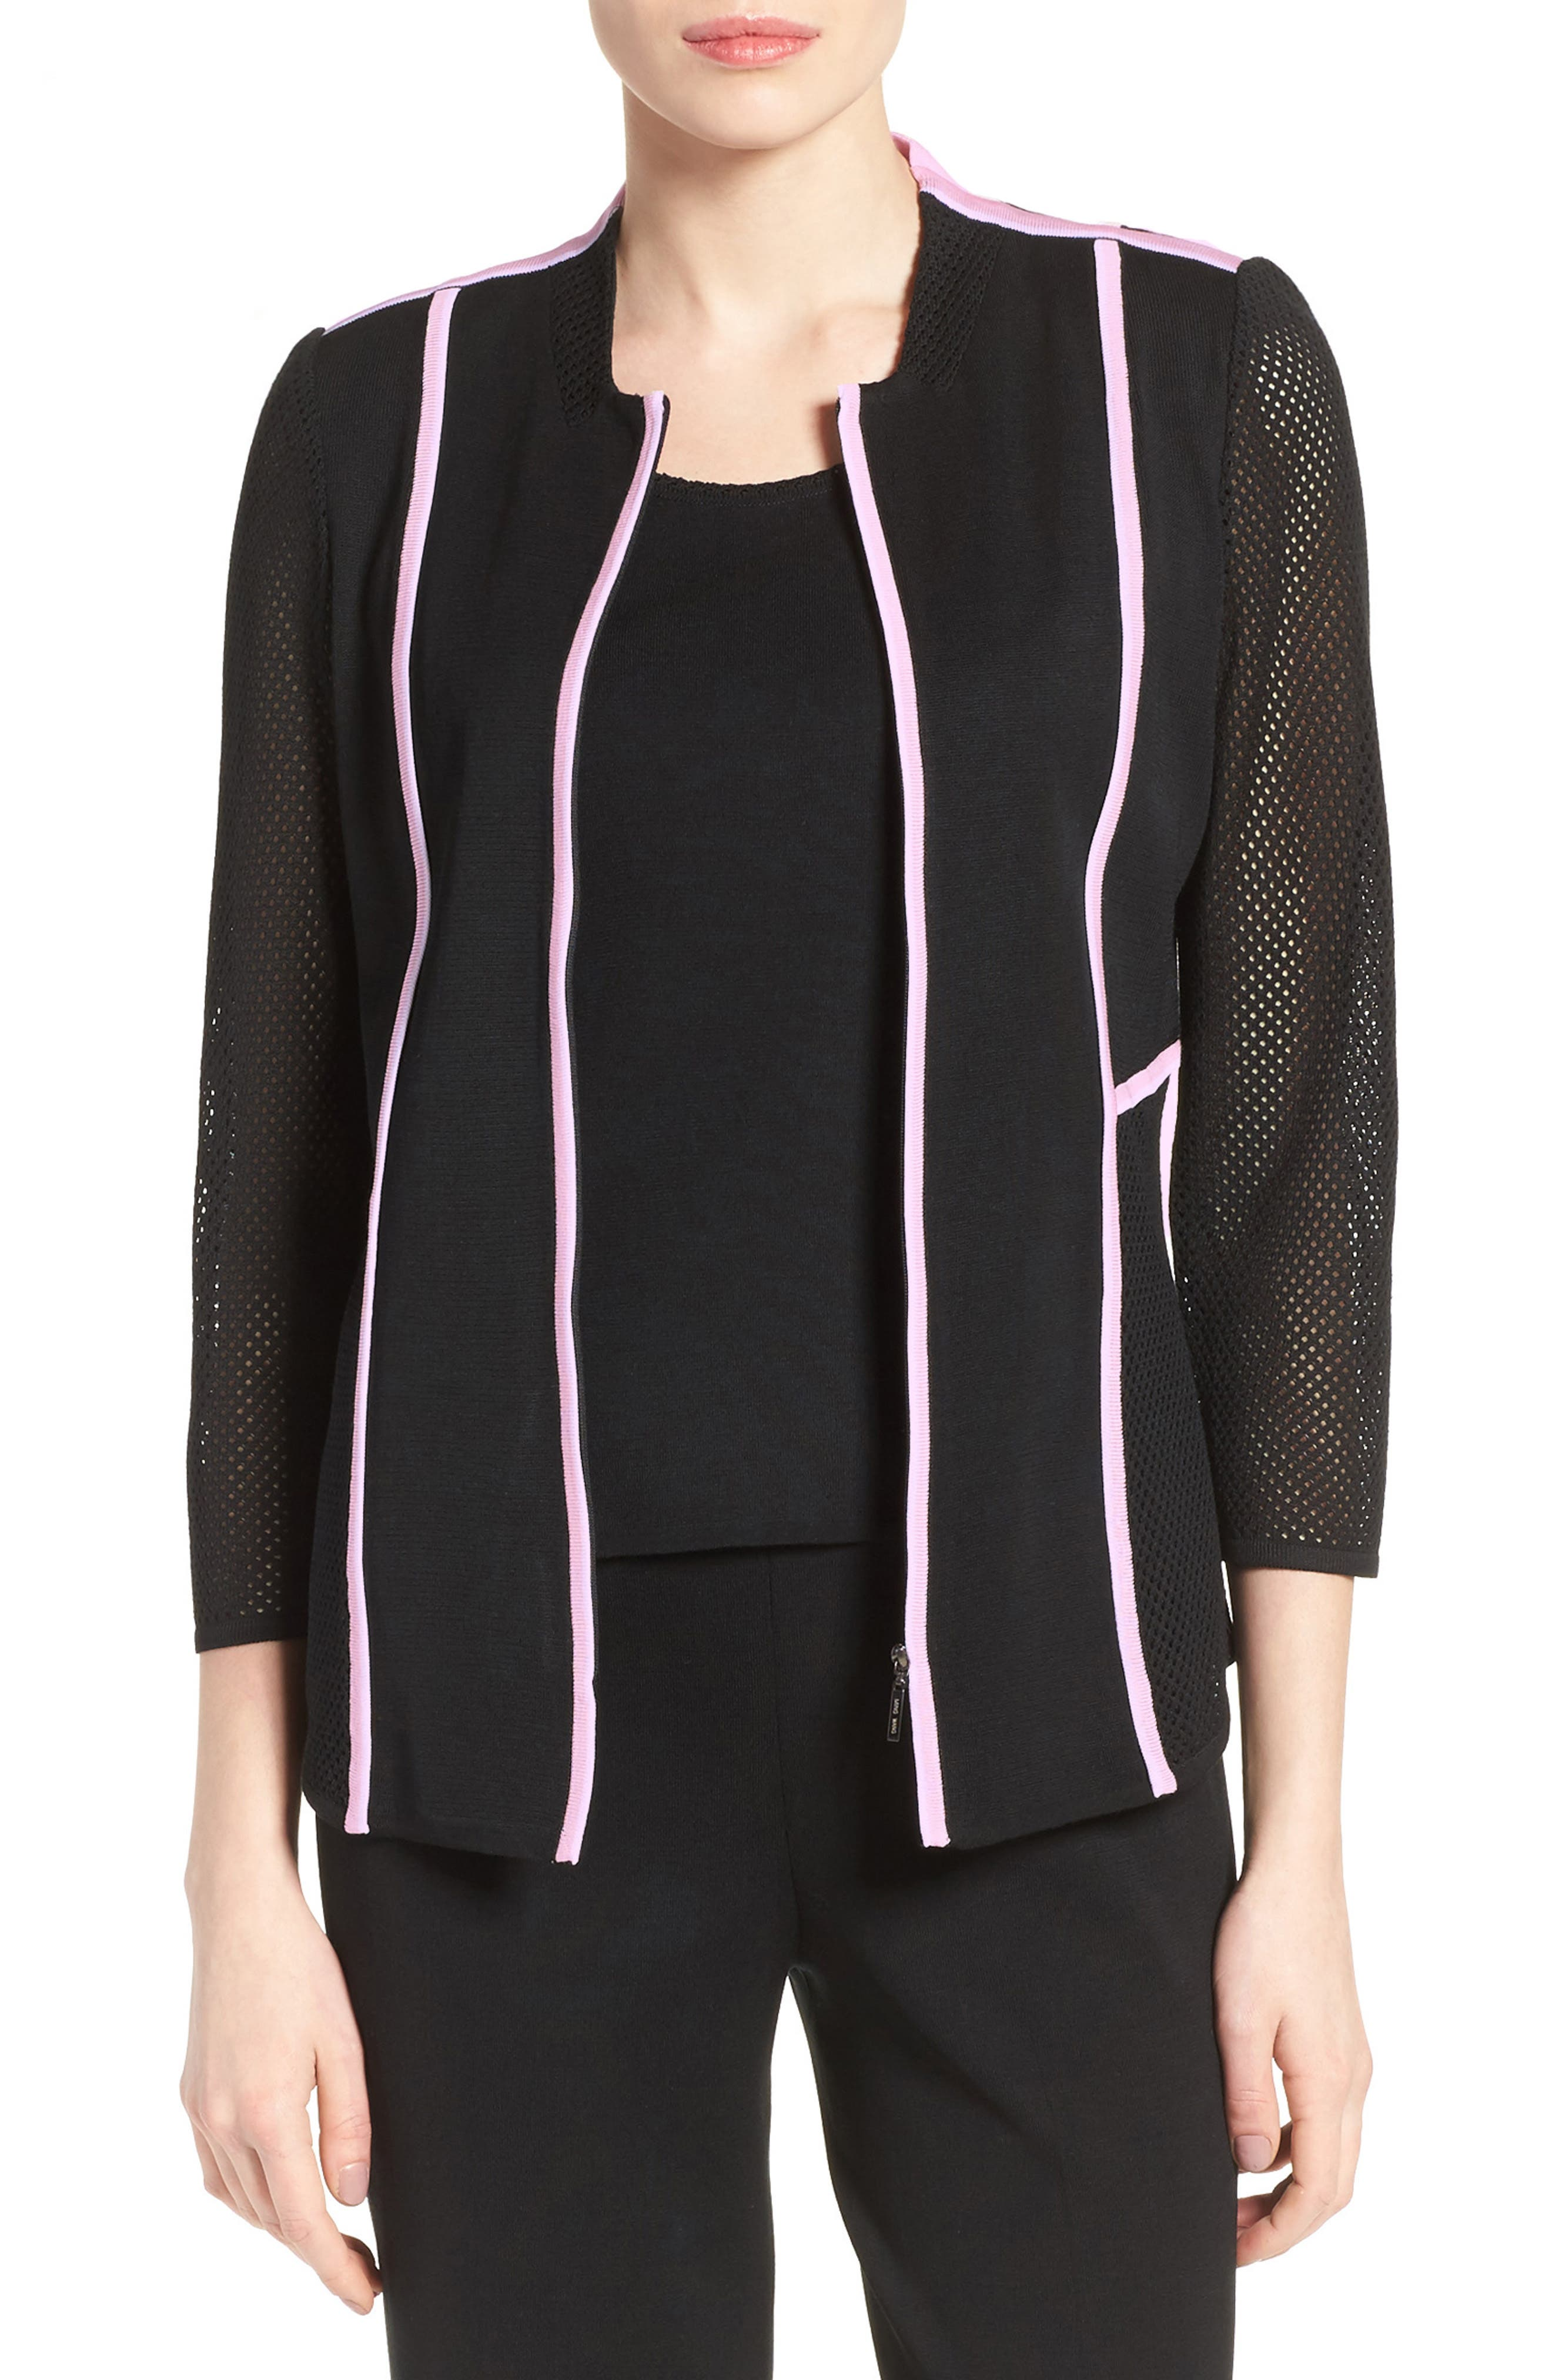 MING WANG Piped Mesh Knit Zip Front Jacket